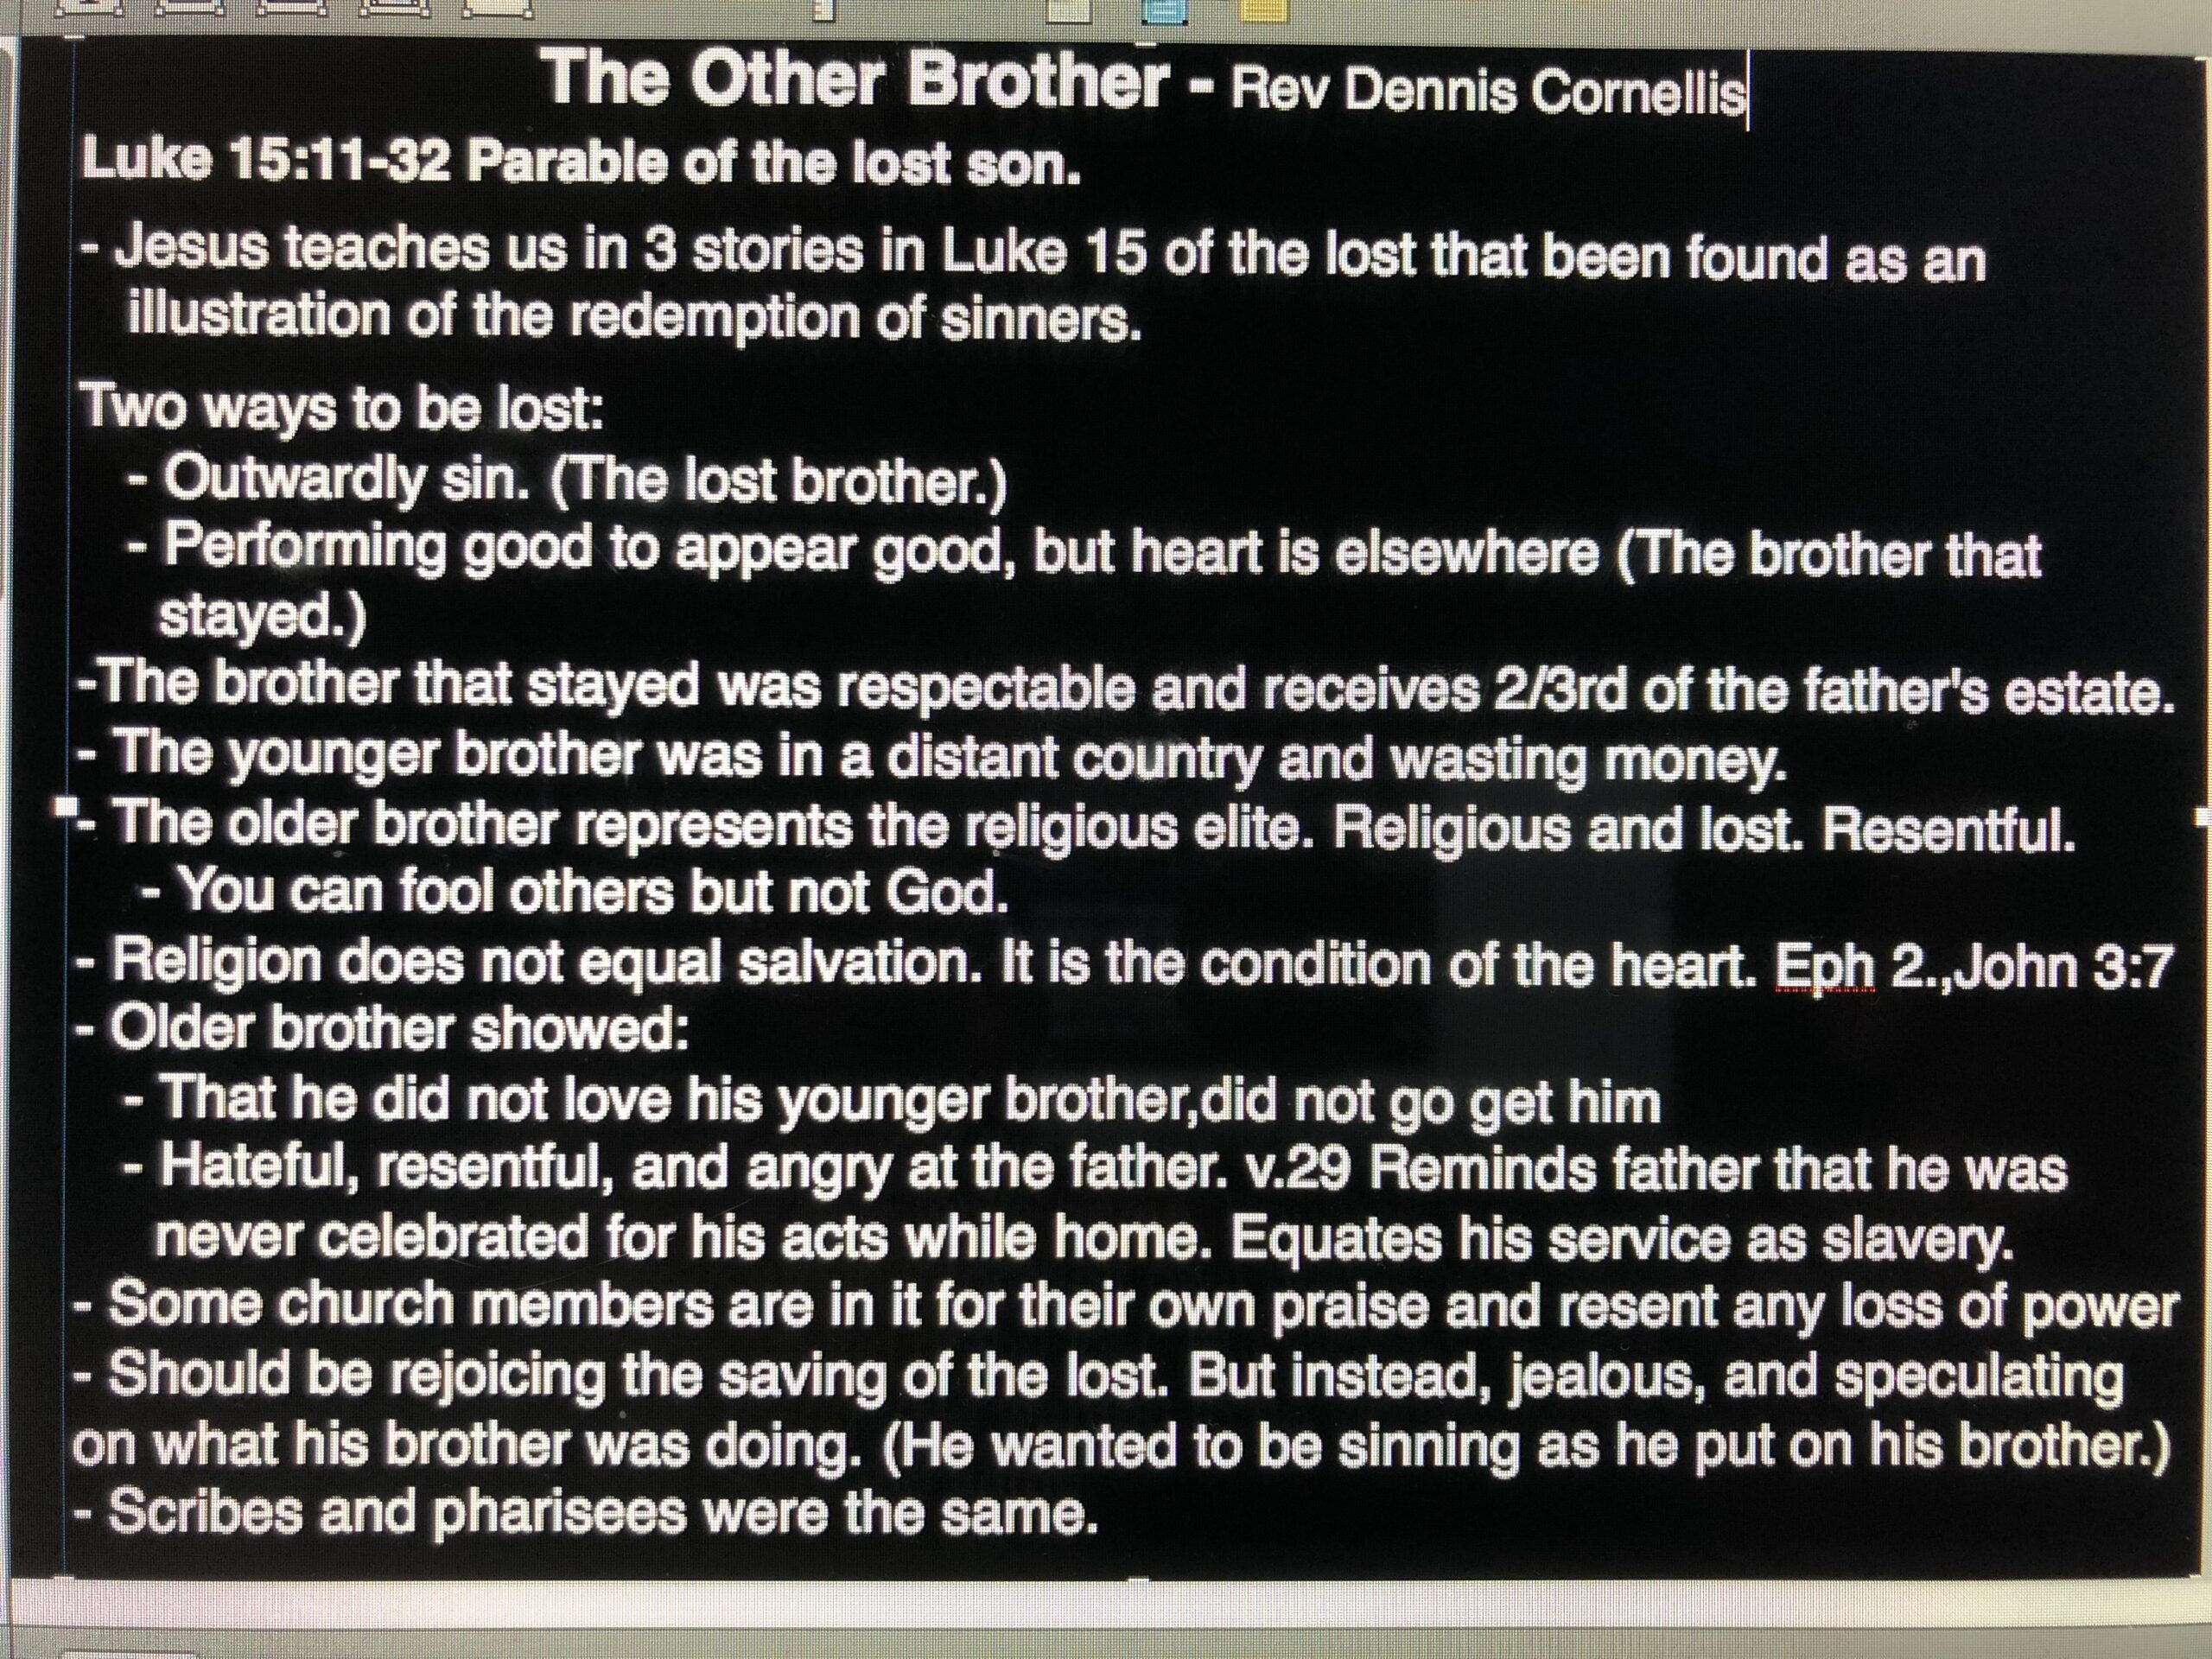 The Other Brother - November 11, 2018